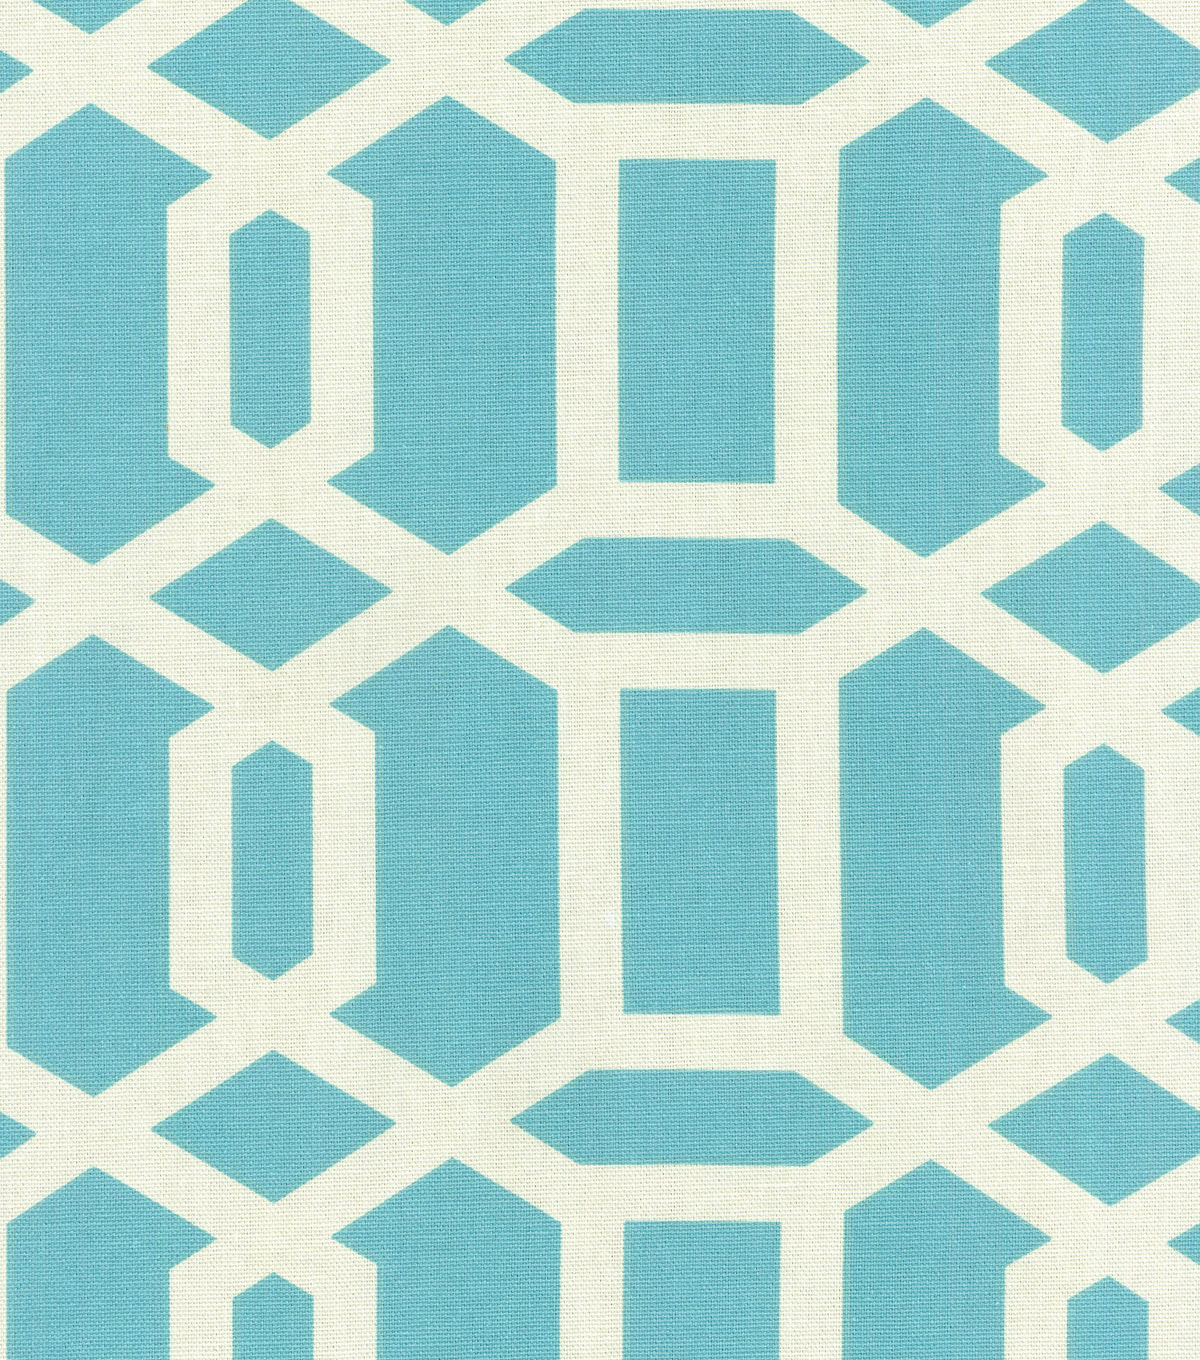 Swavelle Millcreek Multi-Purpose Decor Fabric 54\u0022-Bondi Paramount Seawind